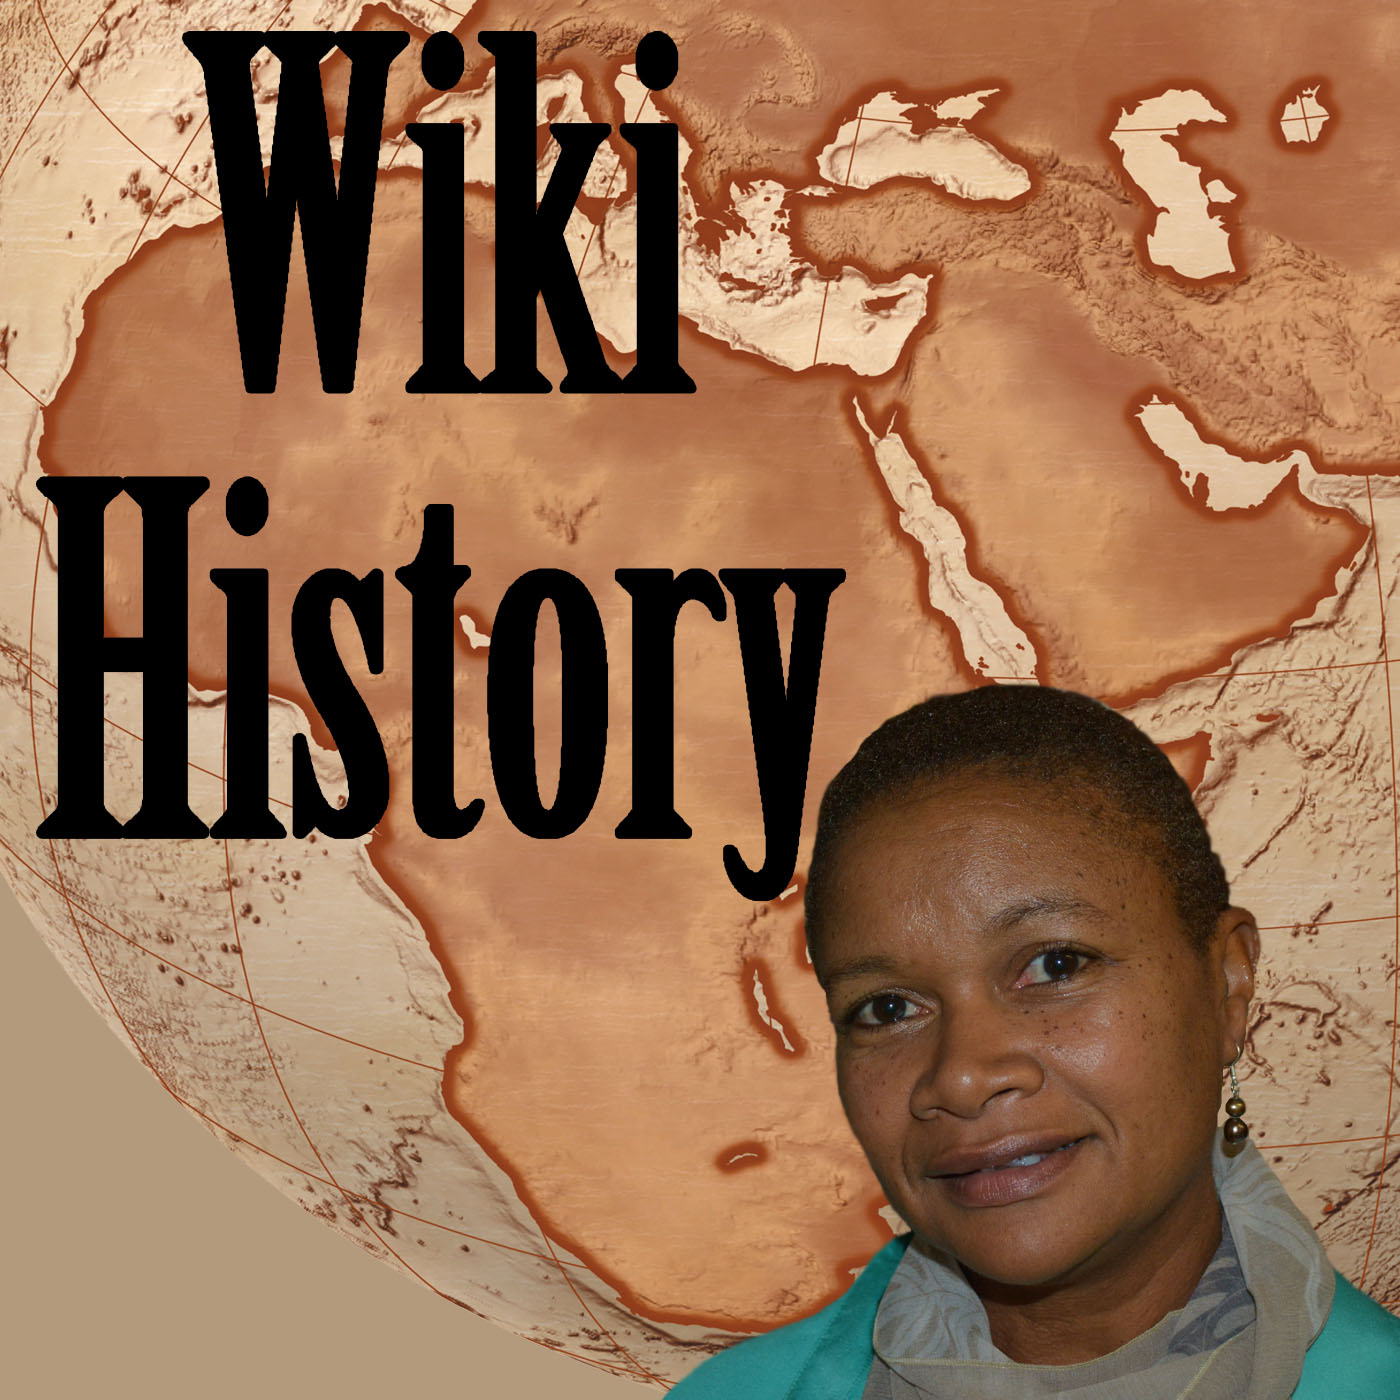 Wiki History!